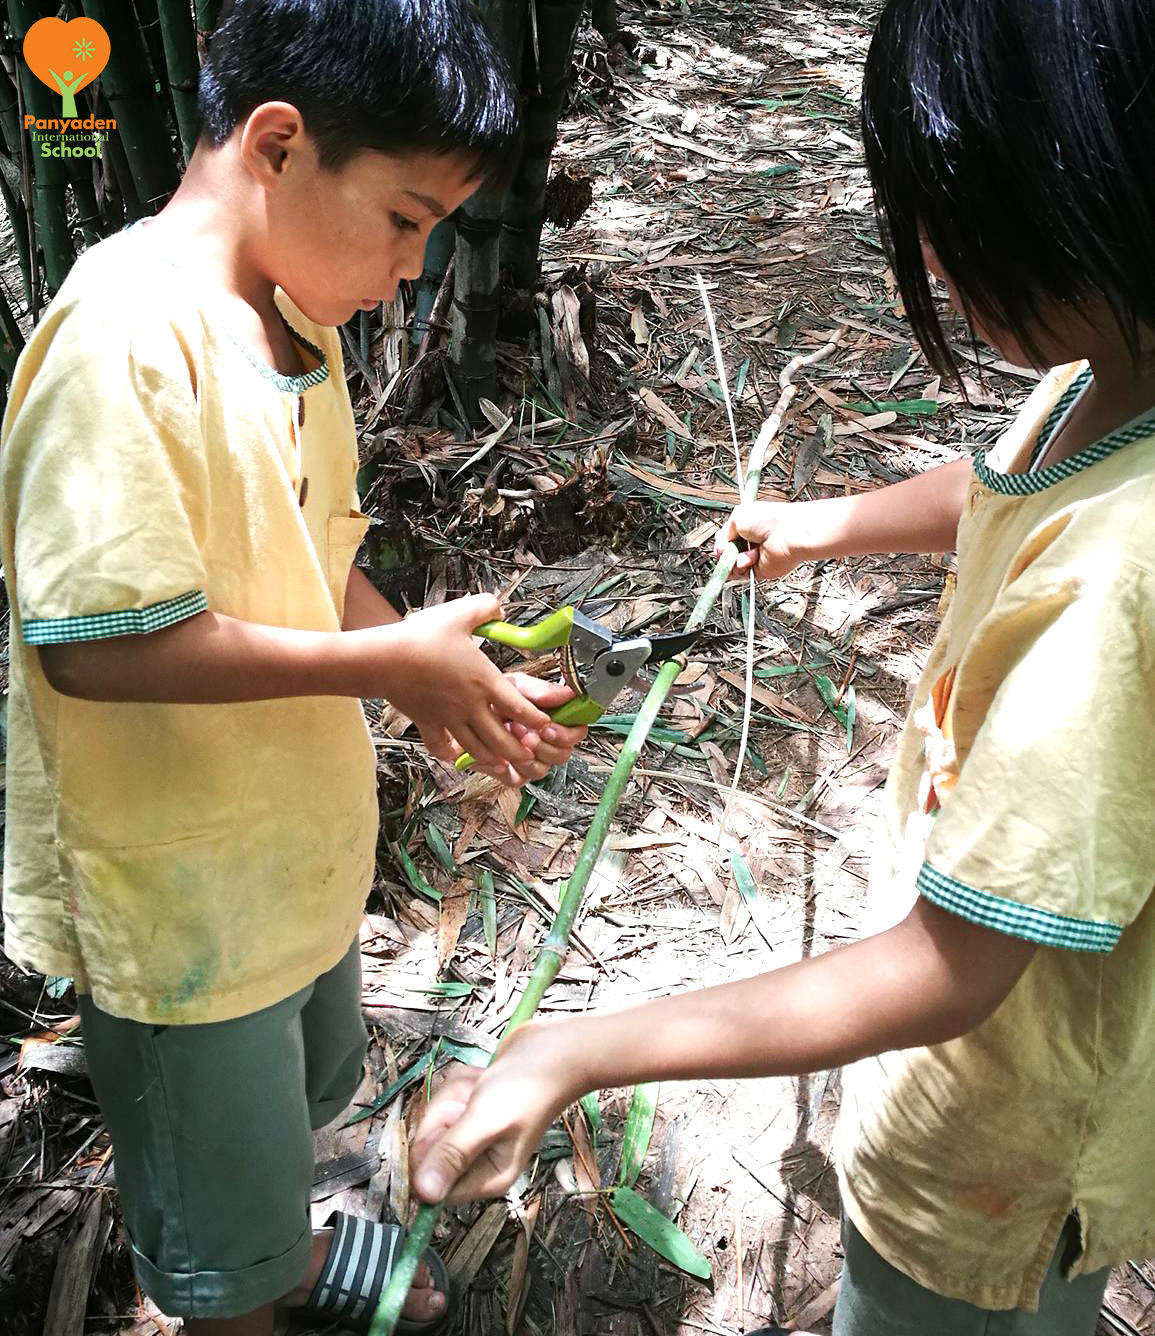 Panyaden Y3 students cutting bamboo to make their own straws